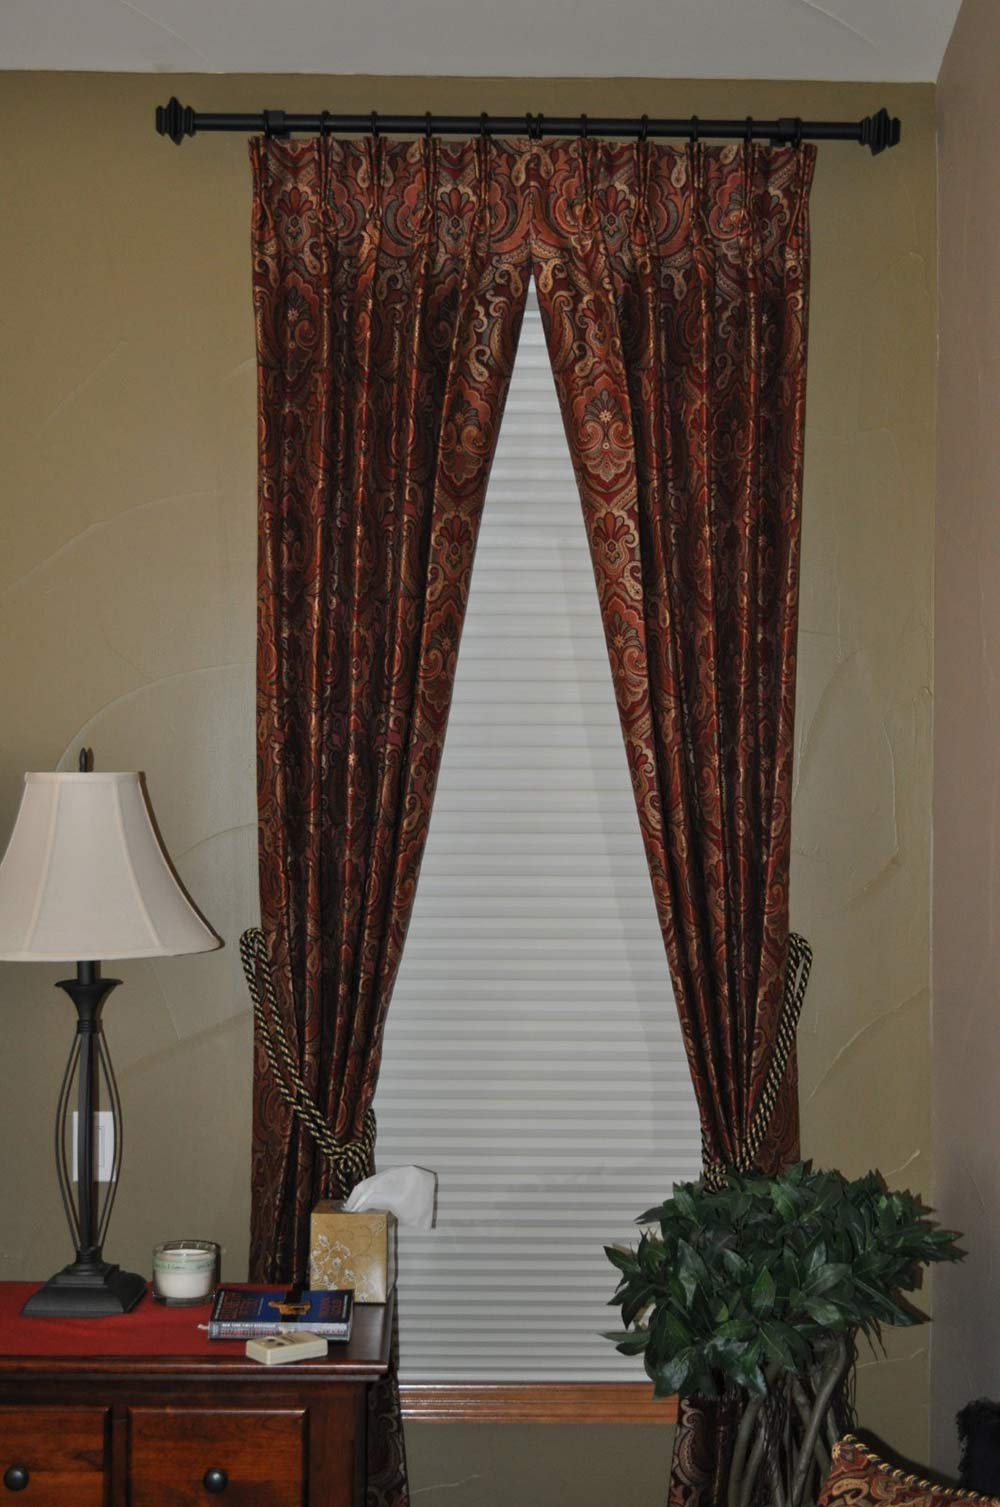 bold curtains tied back with decorative ropes